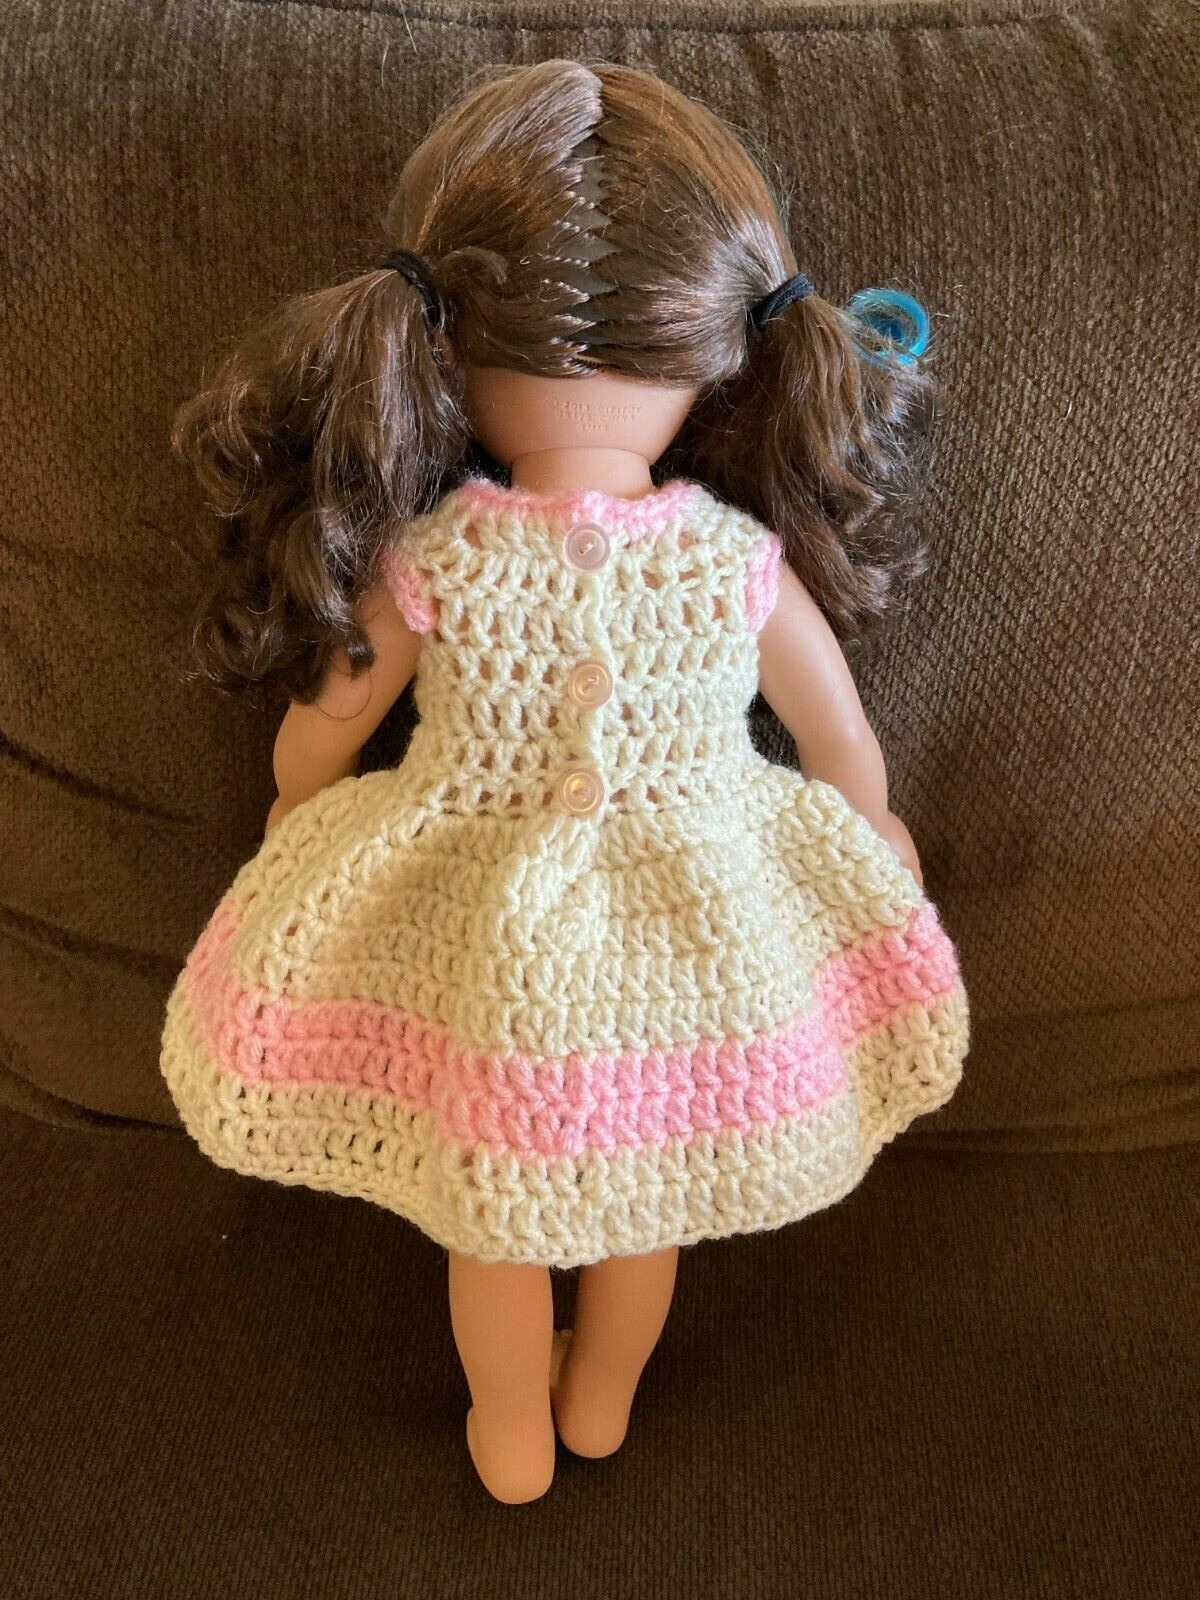 Handmade Crochet Off White And Pink Doll Dress For 18 Dolls - $5.00